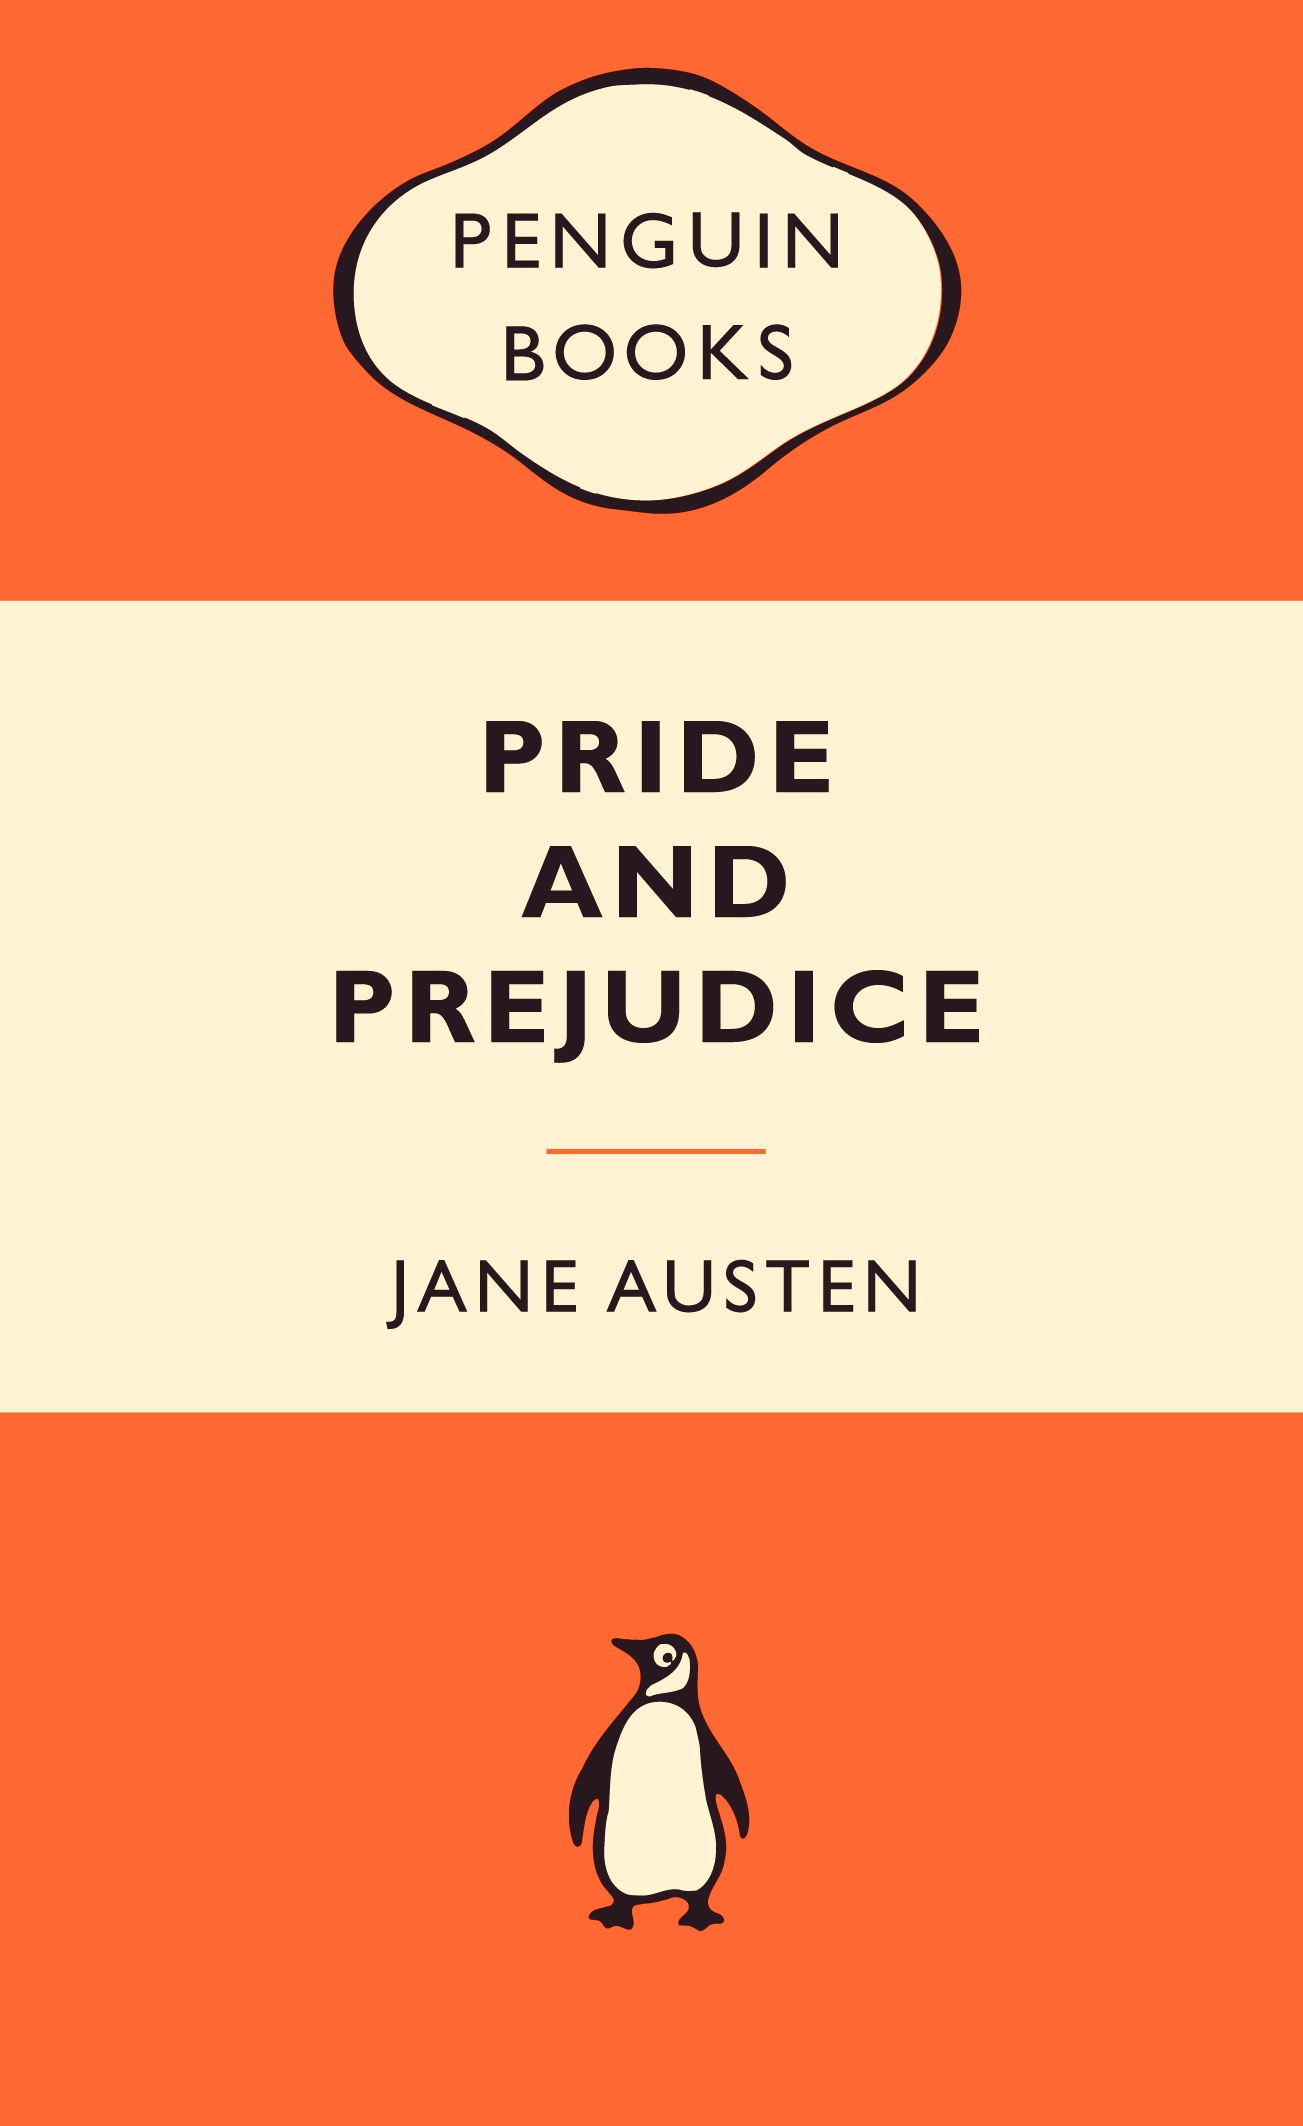 book review prejudice and pride school